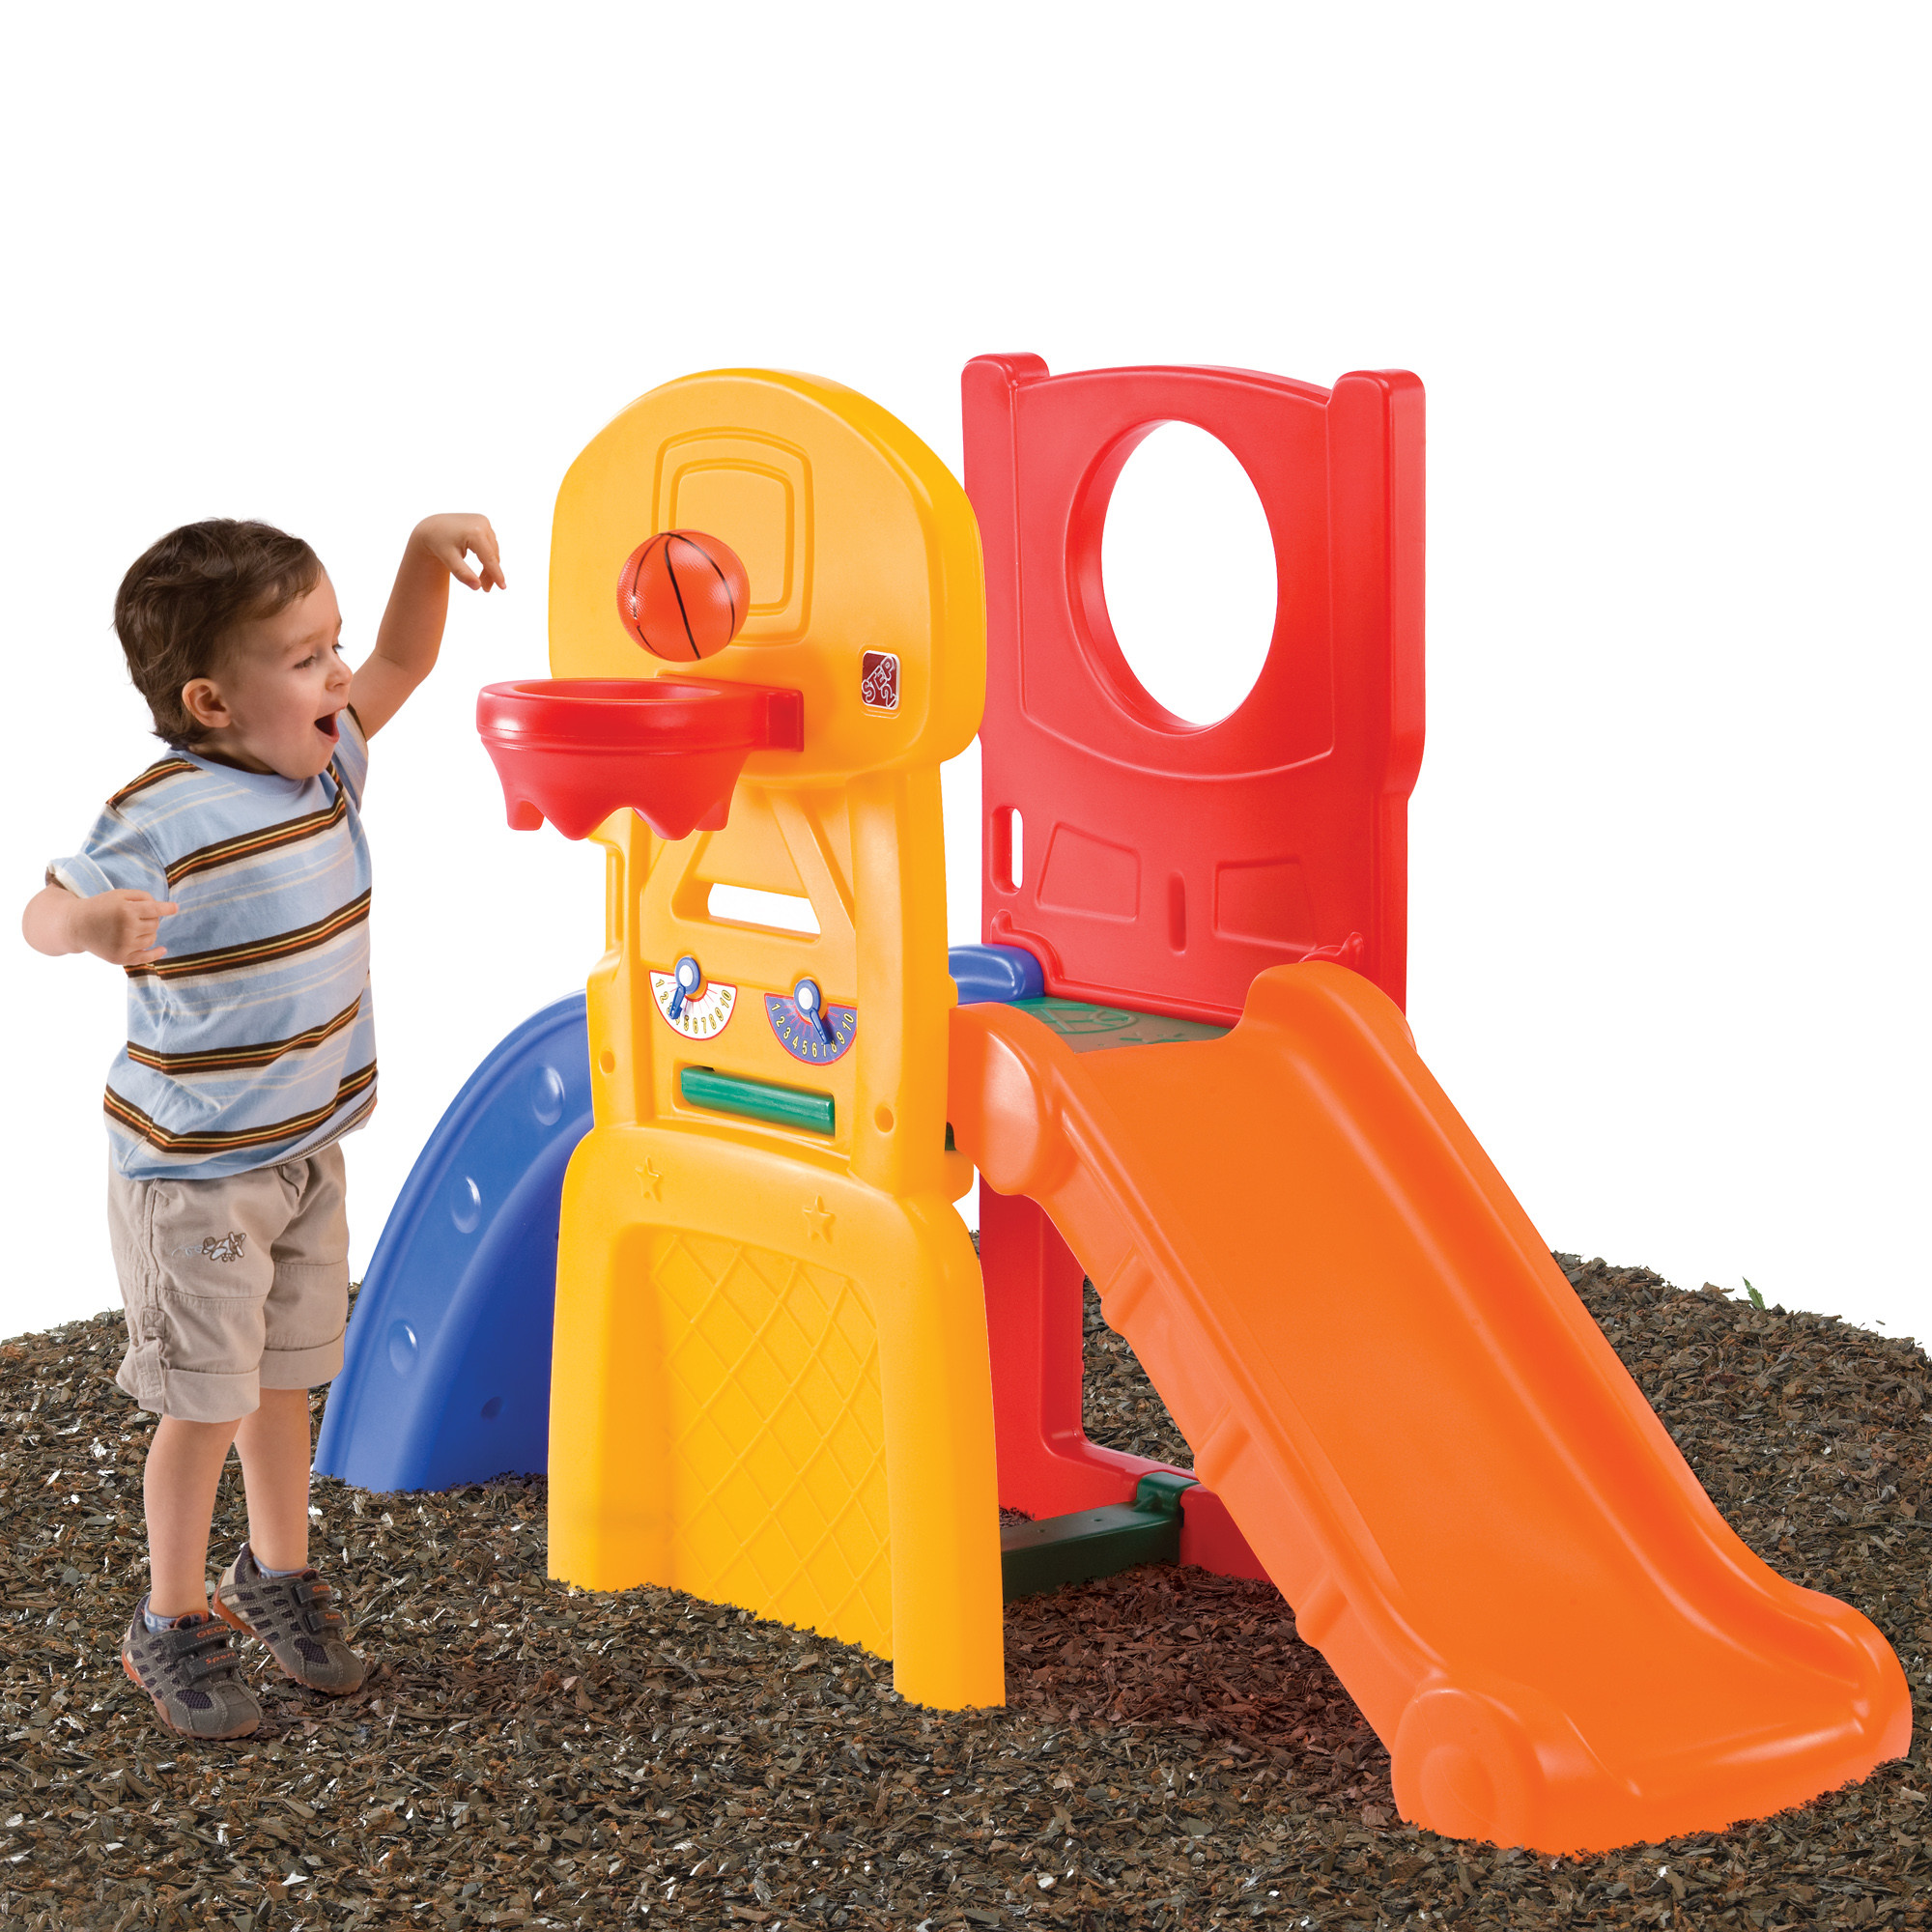 Step 2 Outdoor Climber with Slide | Step 2 Club House | Step2 Naturally Playful Woodland Climber